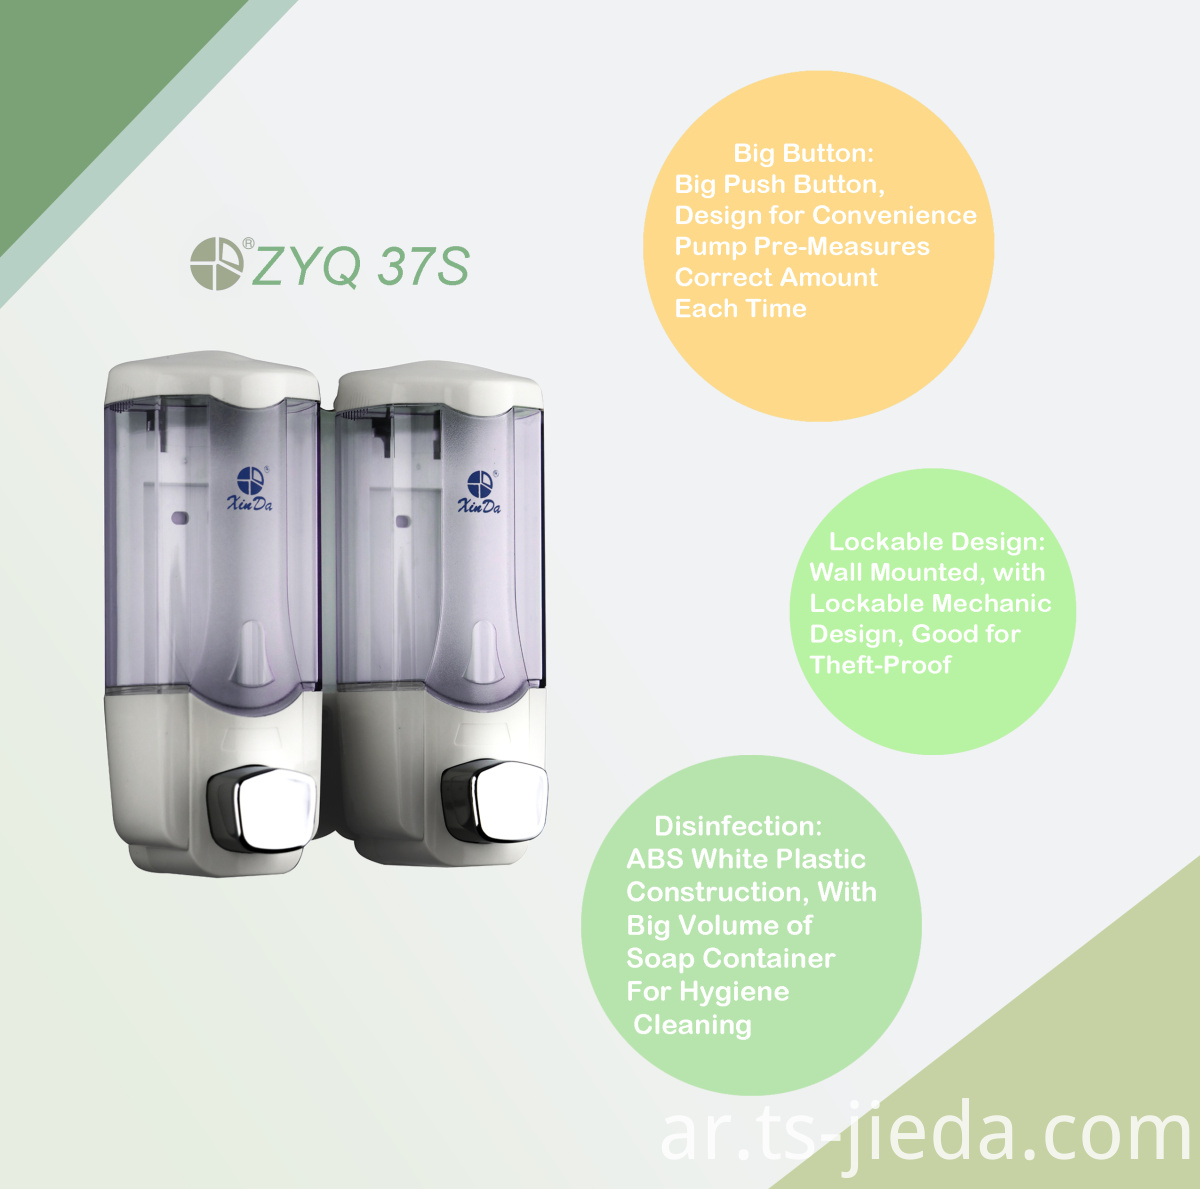 Wall-mounted automatic soap dispenser